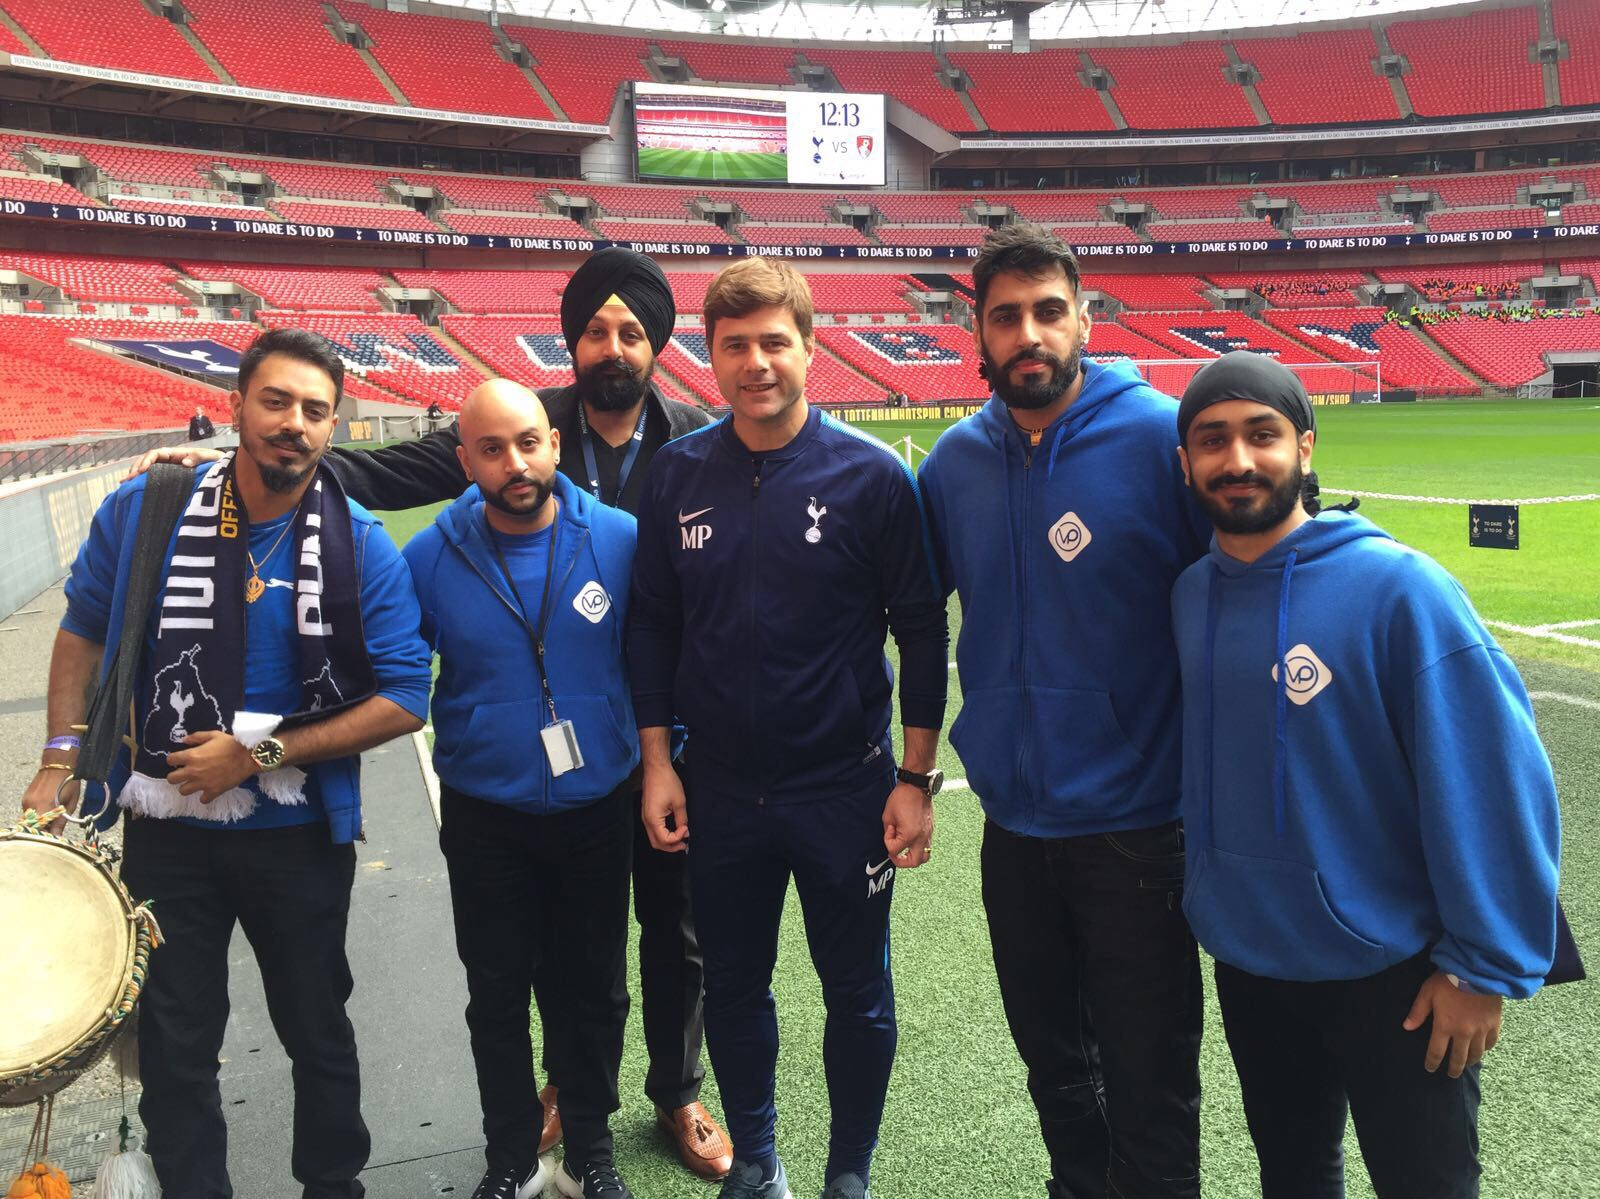 Diwali celebrations with tottenham hotspur